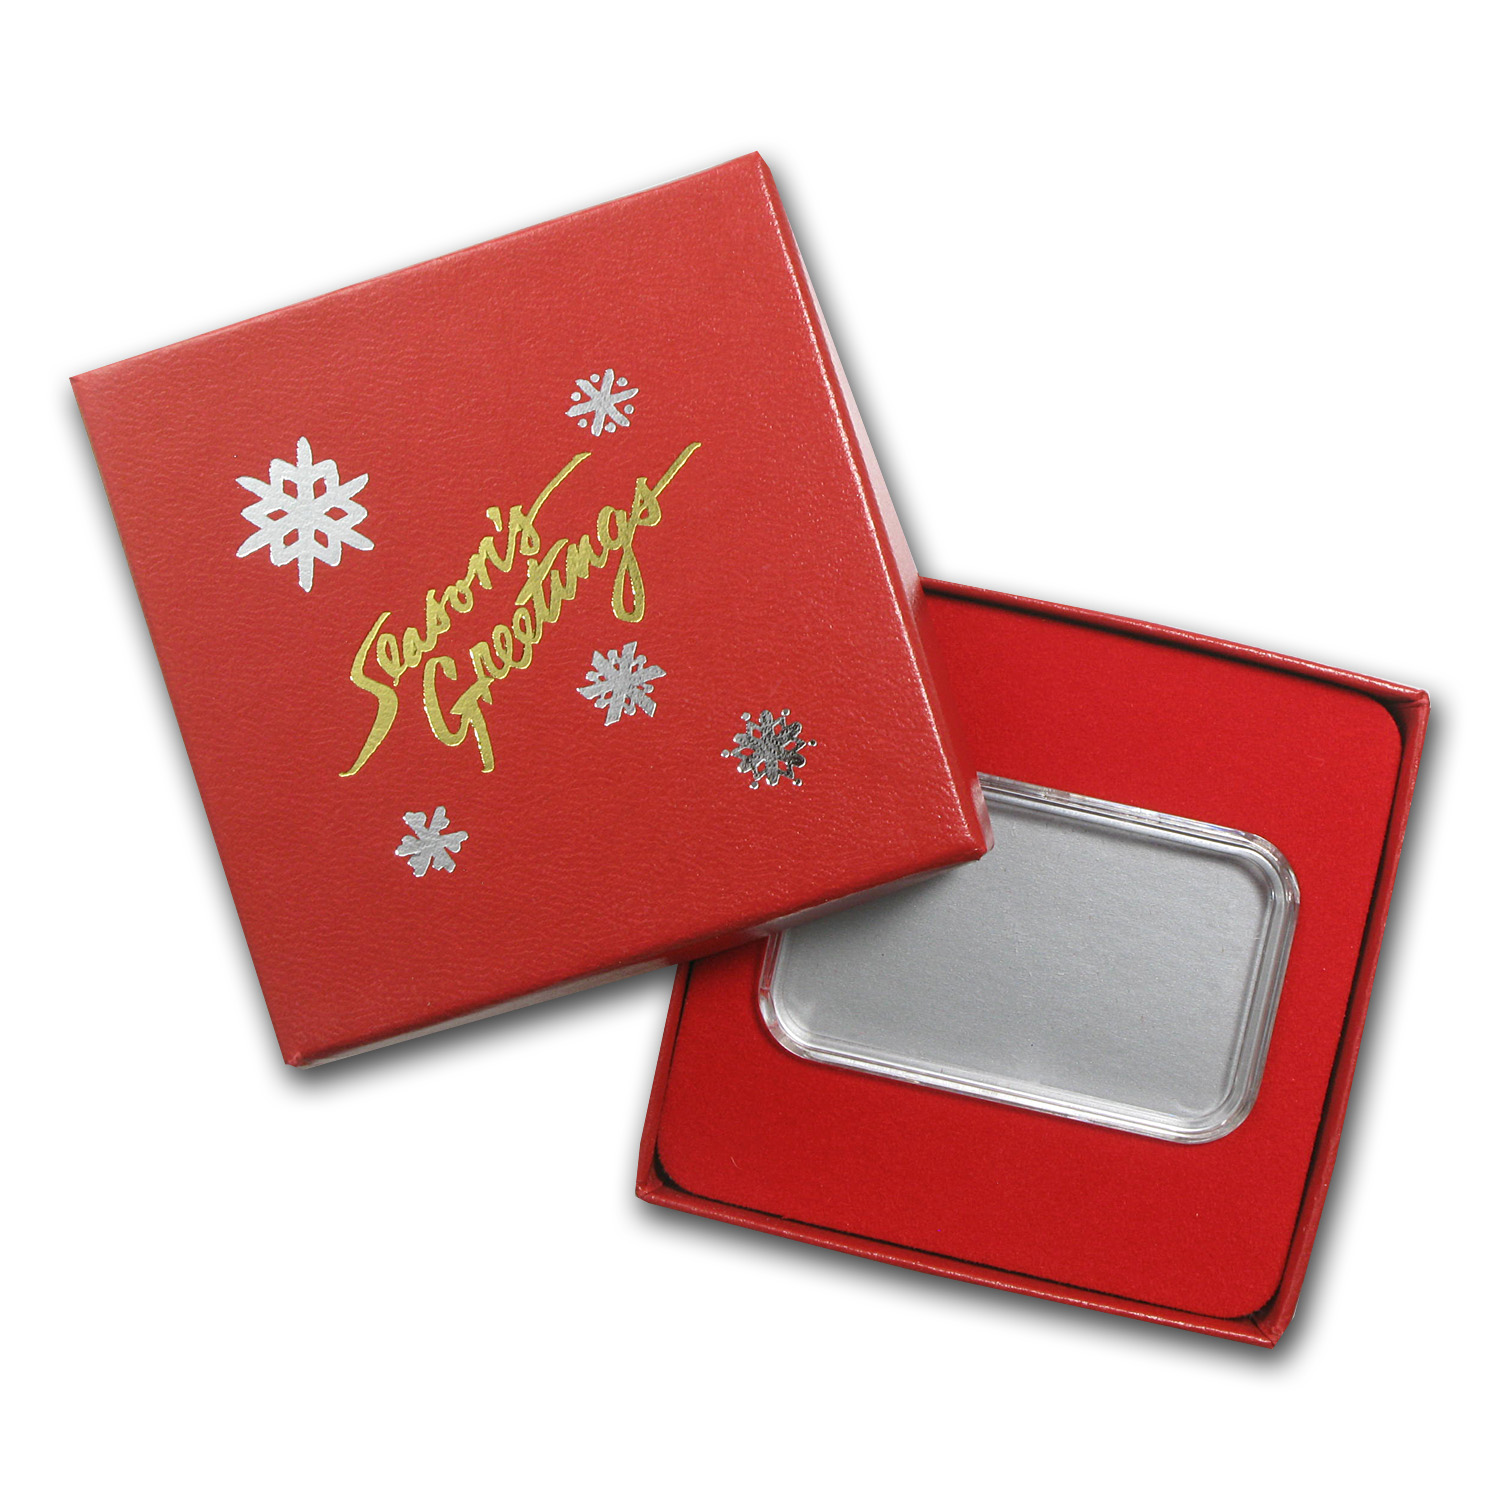 Season's Greetings Red Gift Box for 1 oz Silver Bars